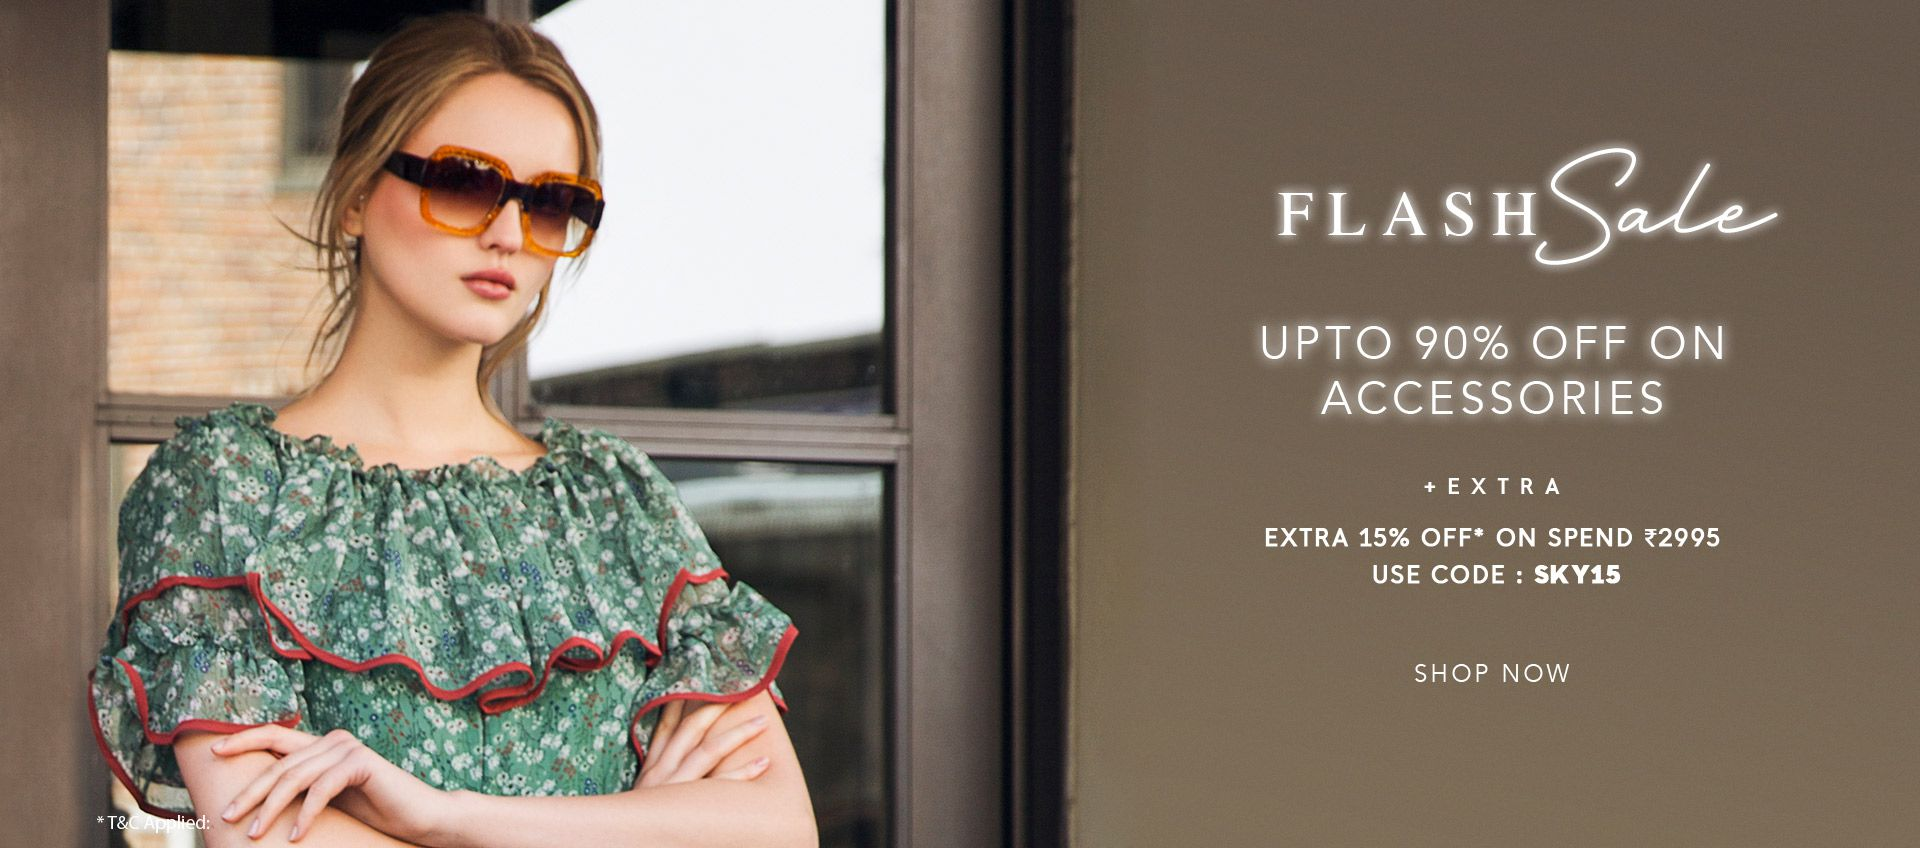 FLASH SALE UPTO 90% OFF ON ACCESSORIES